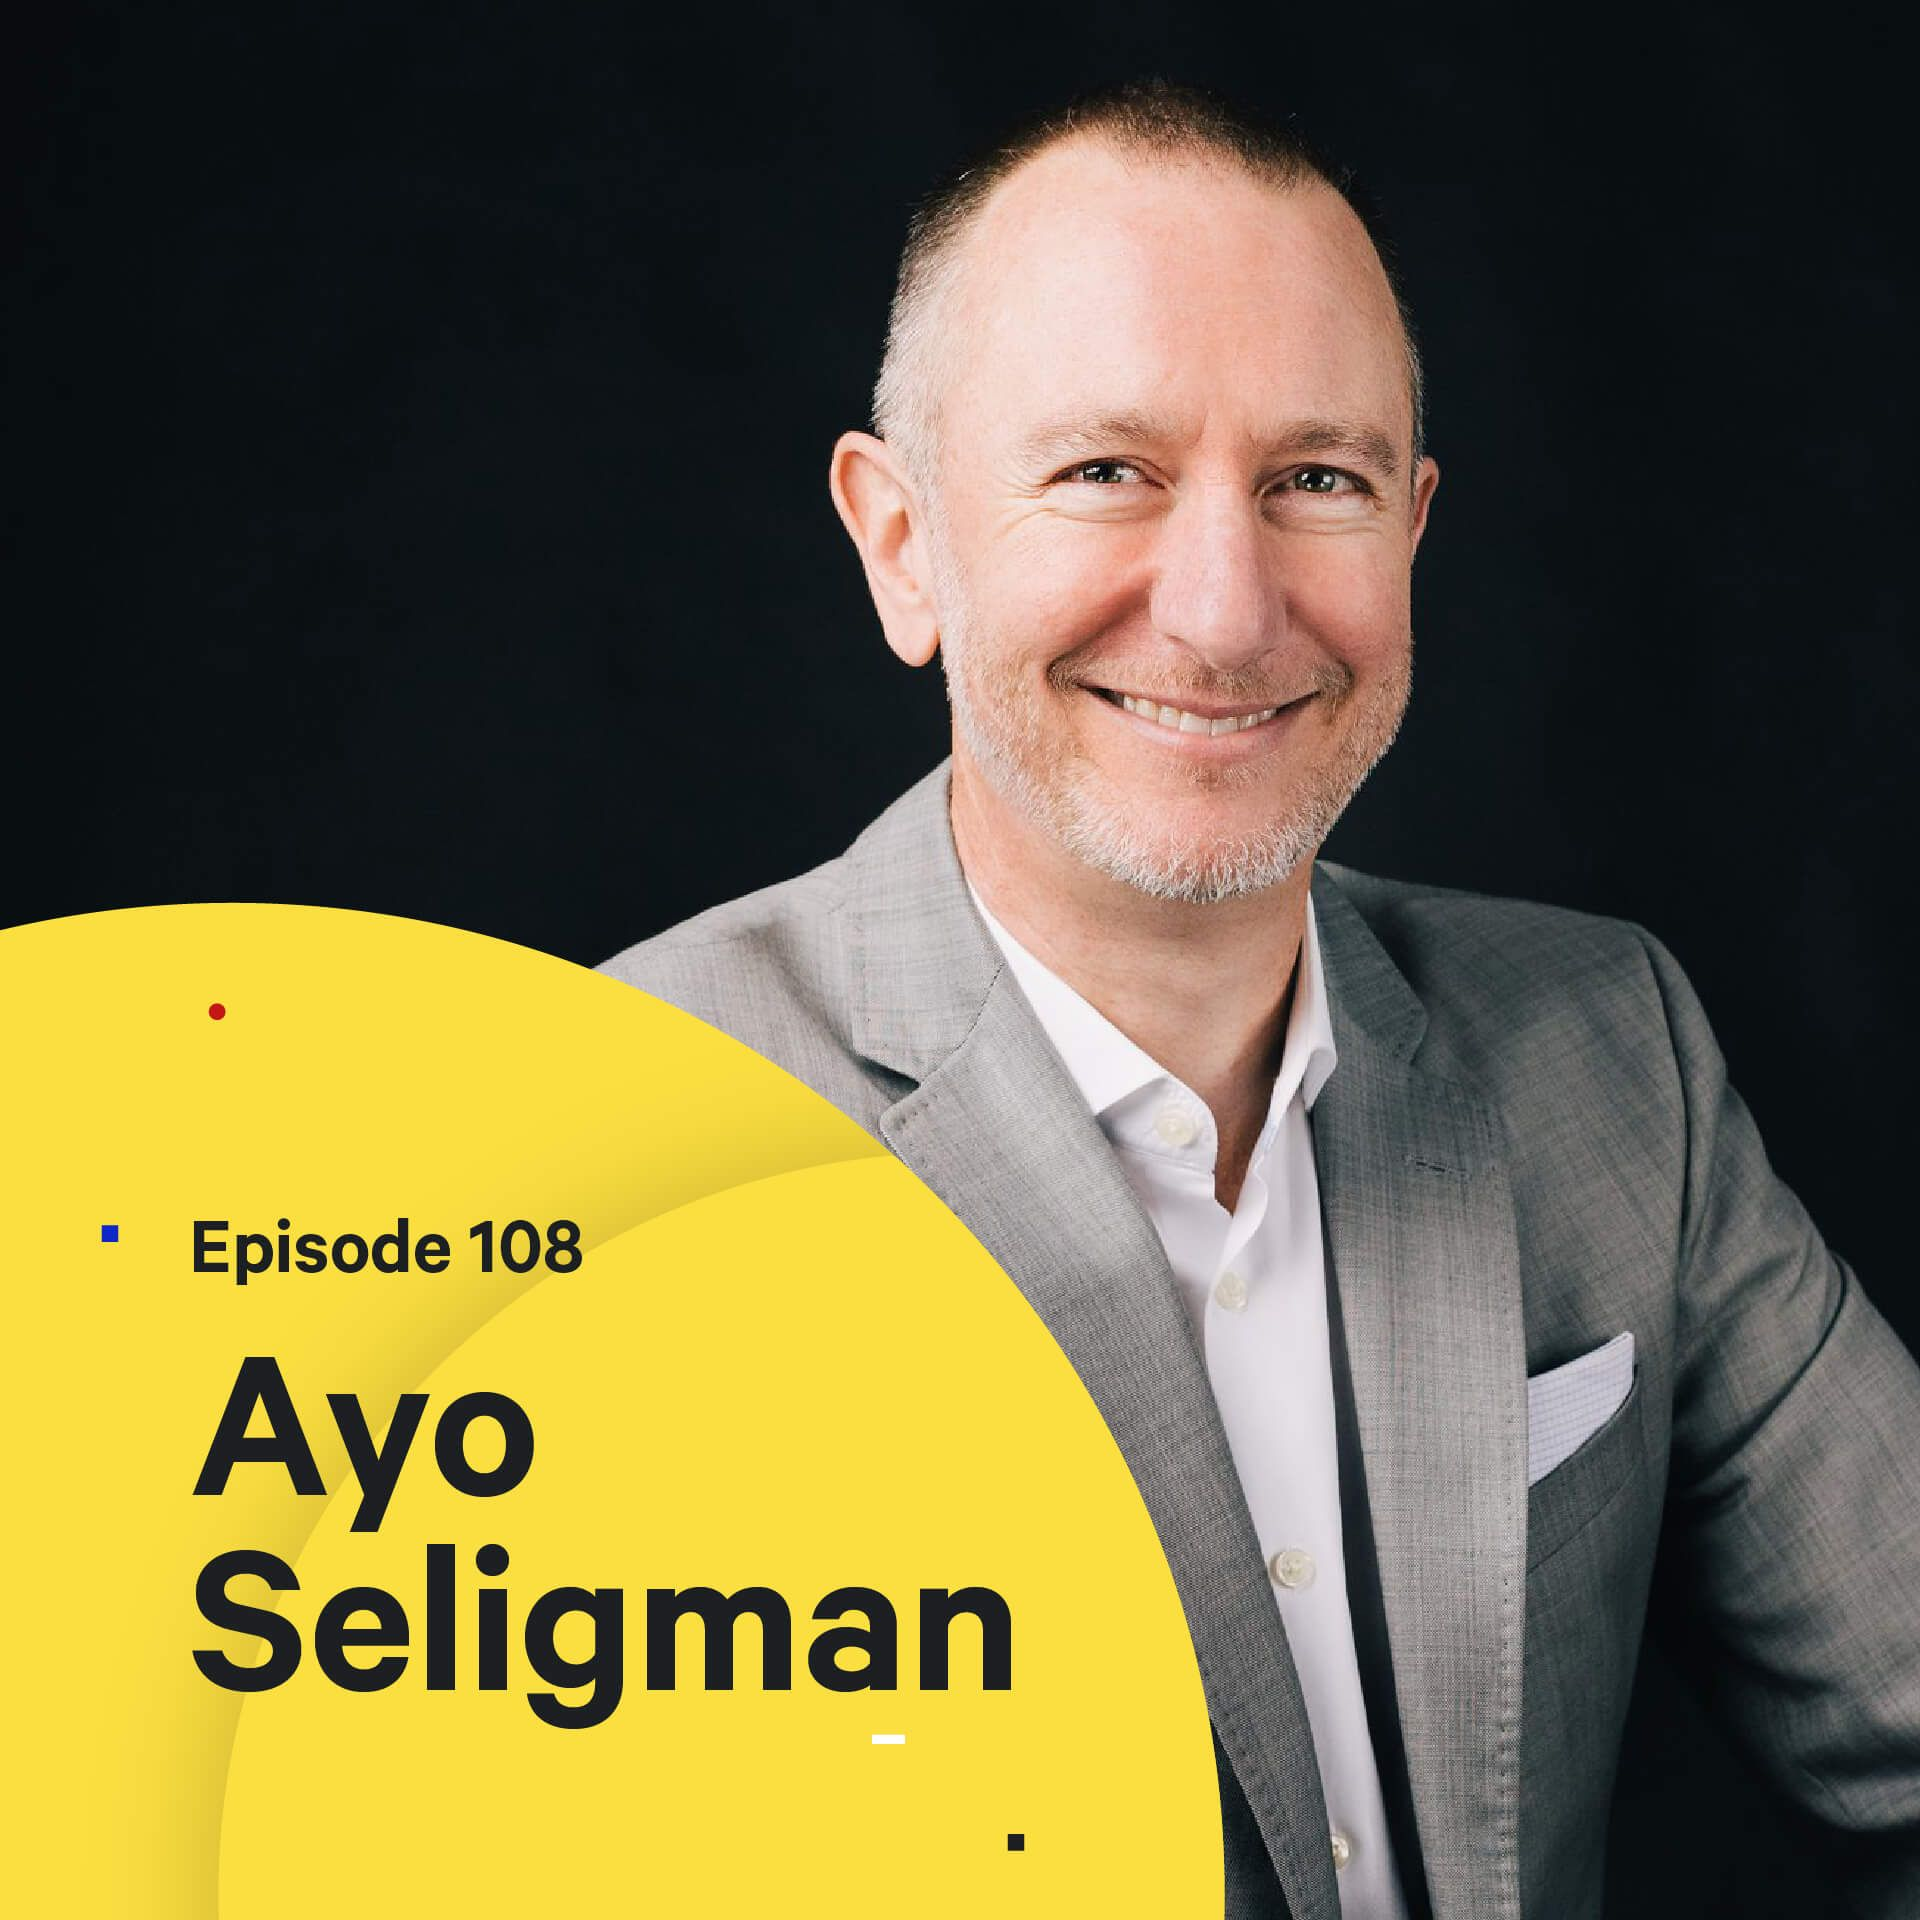 108 - Redesigning Education — with Ayo Seligman